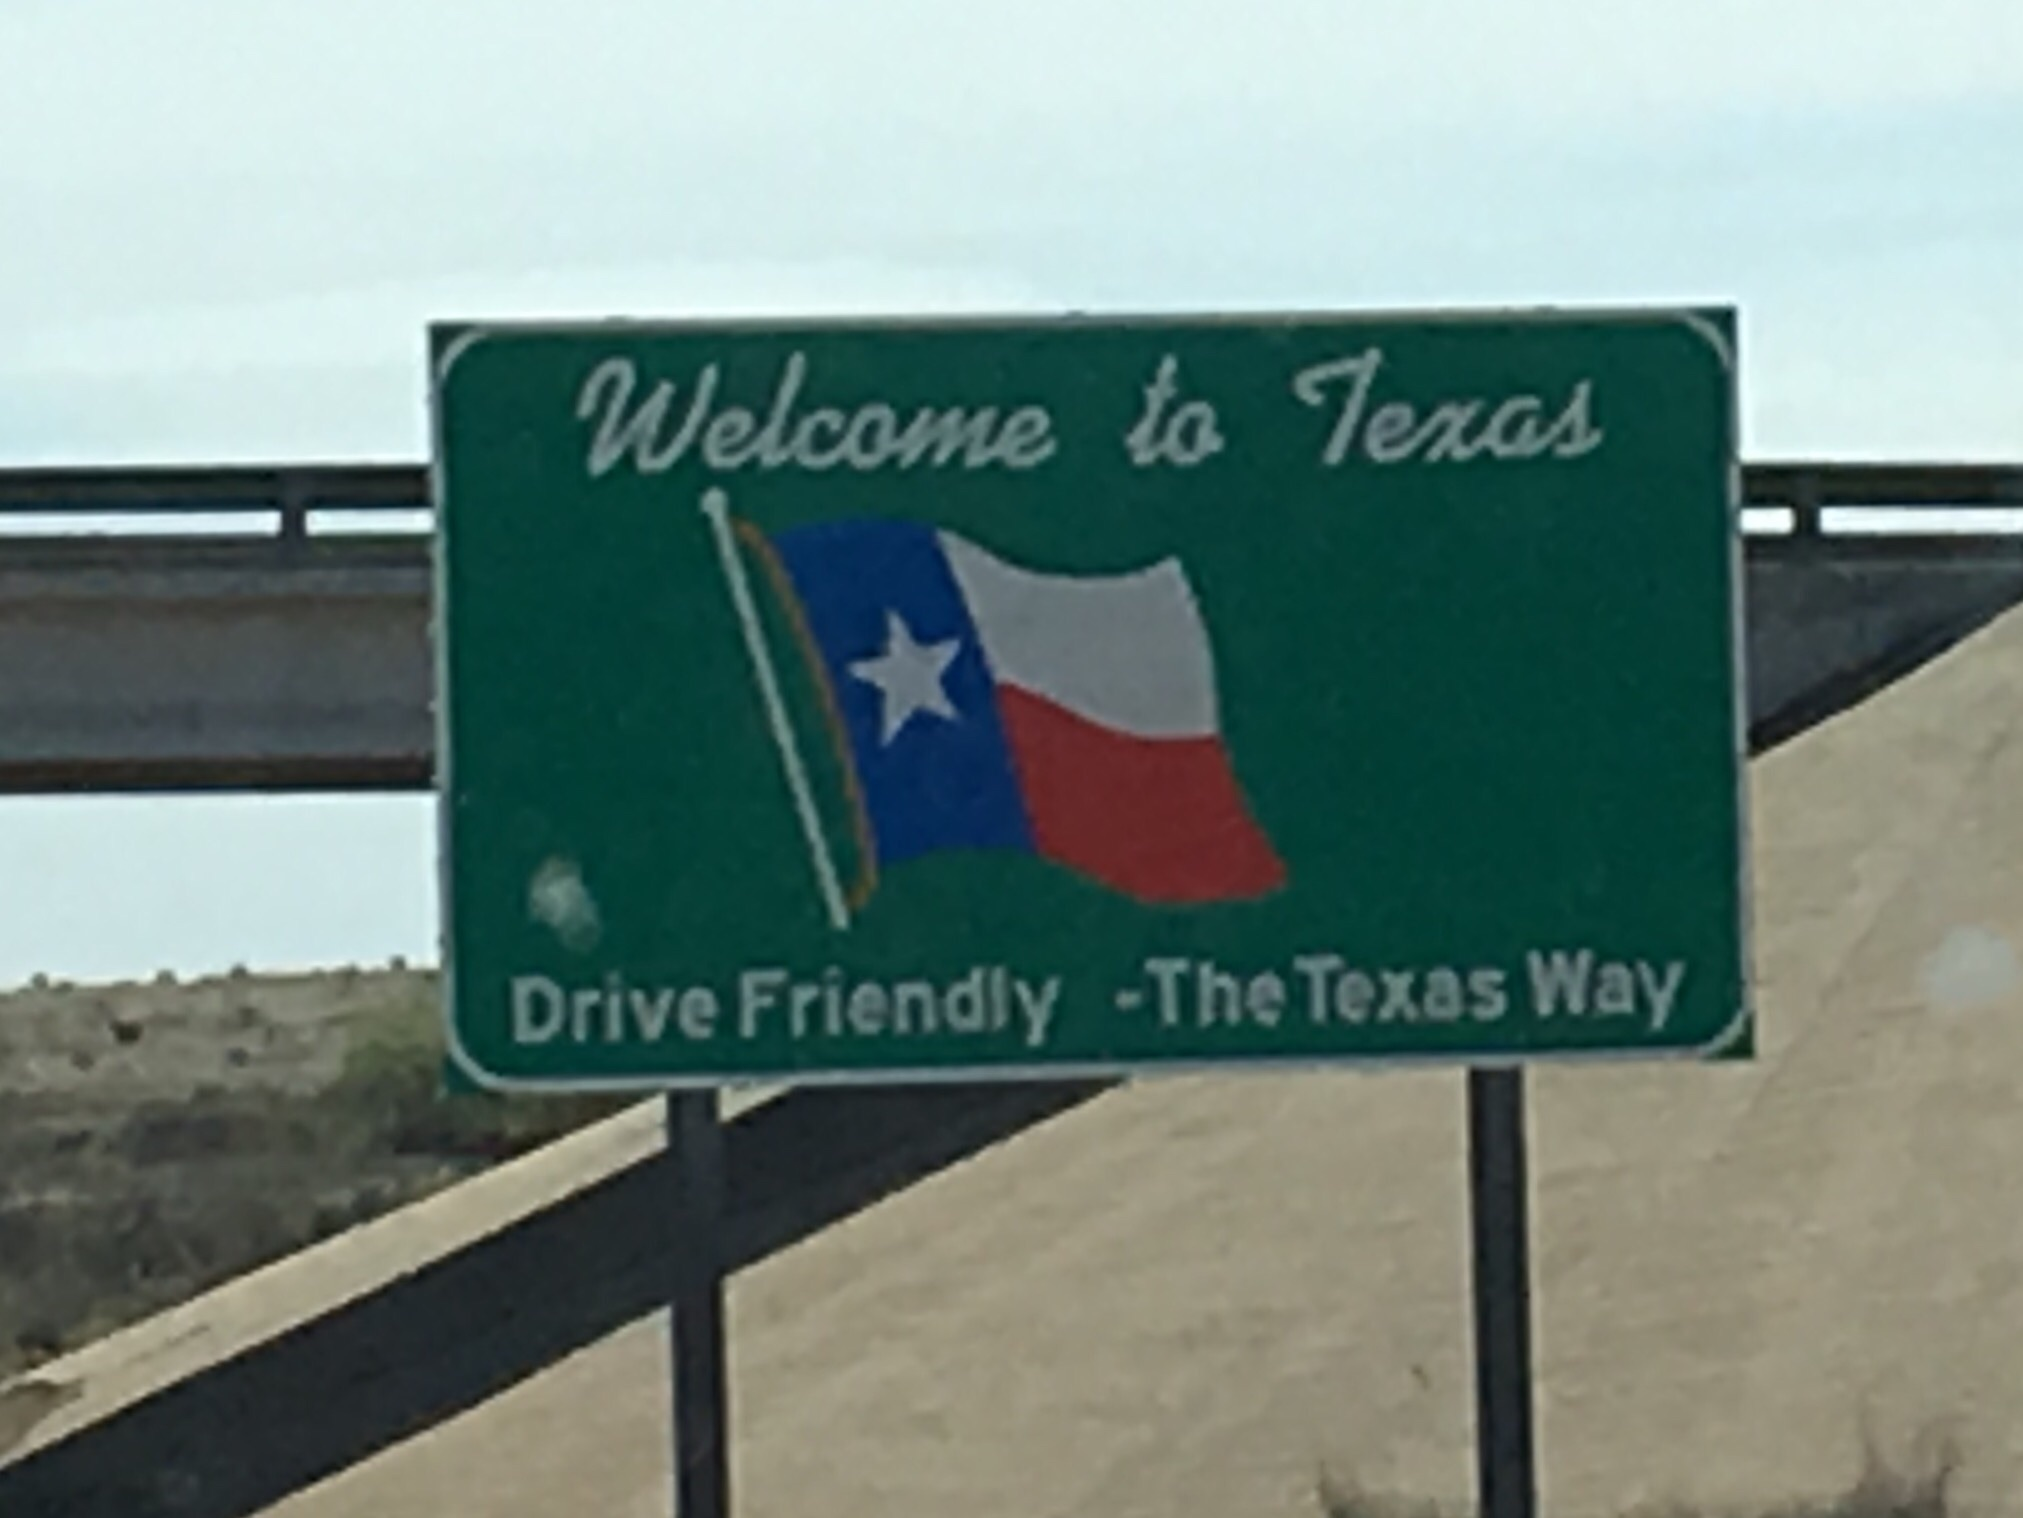 We crossed the Texas panhandle